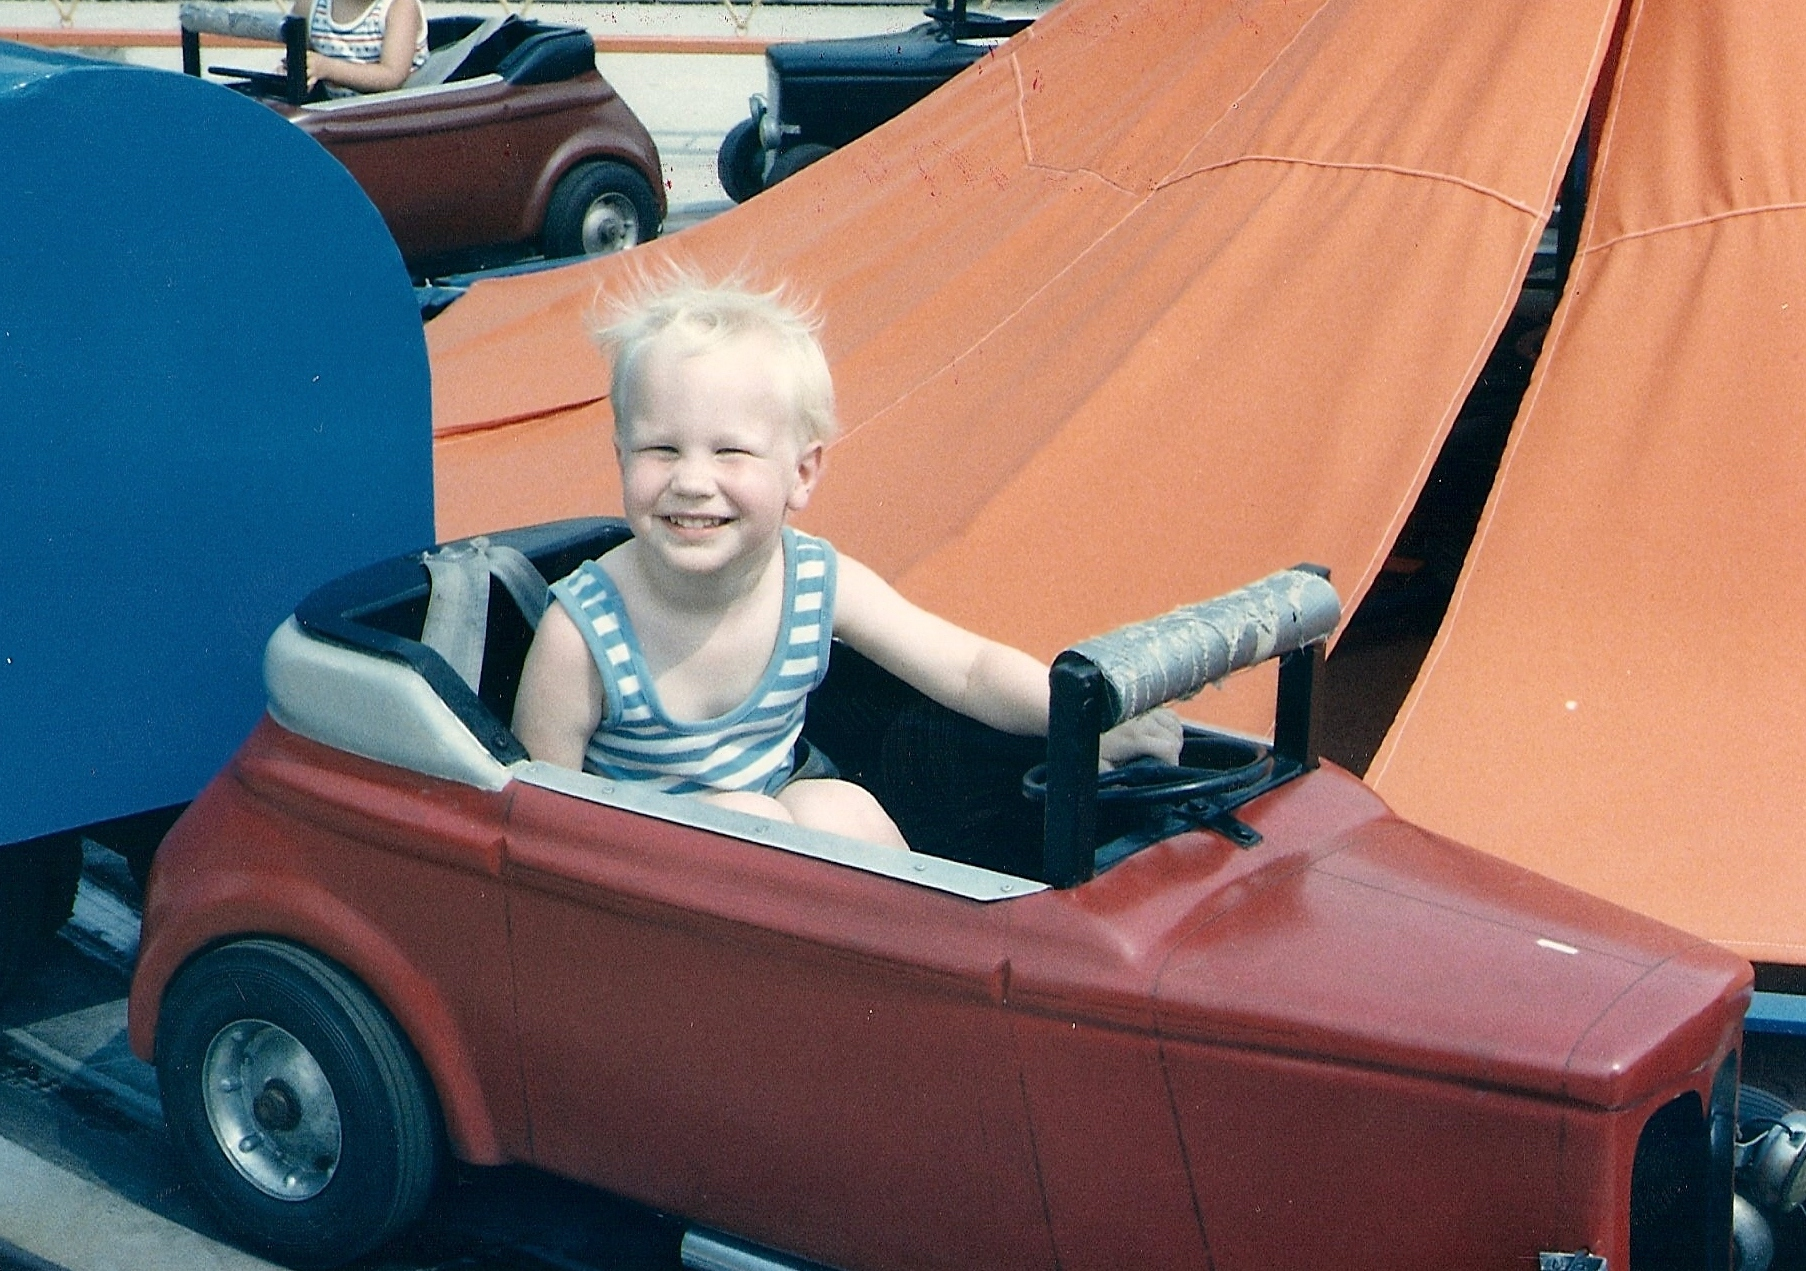 Joel Willis, 4 years old, in a car ride at Americana theme park